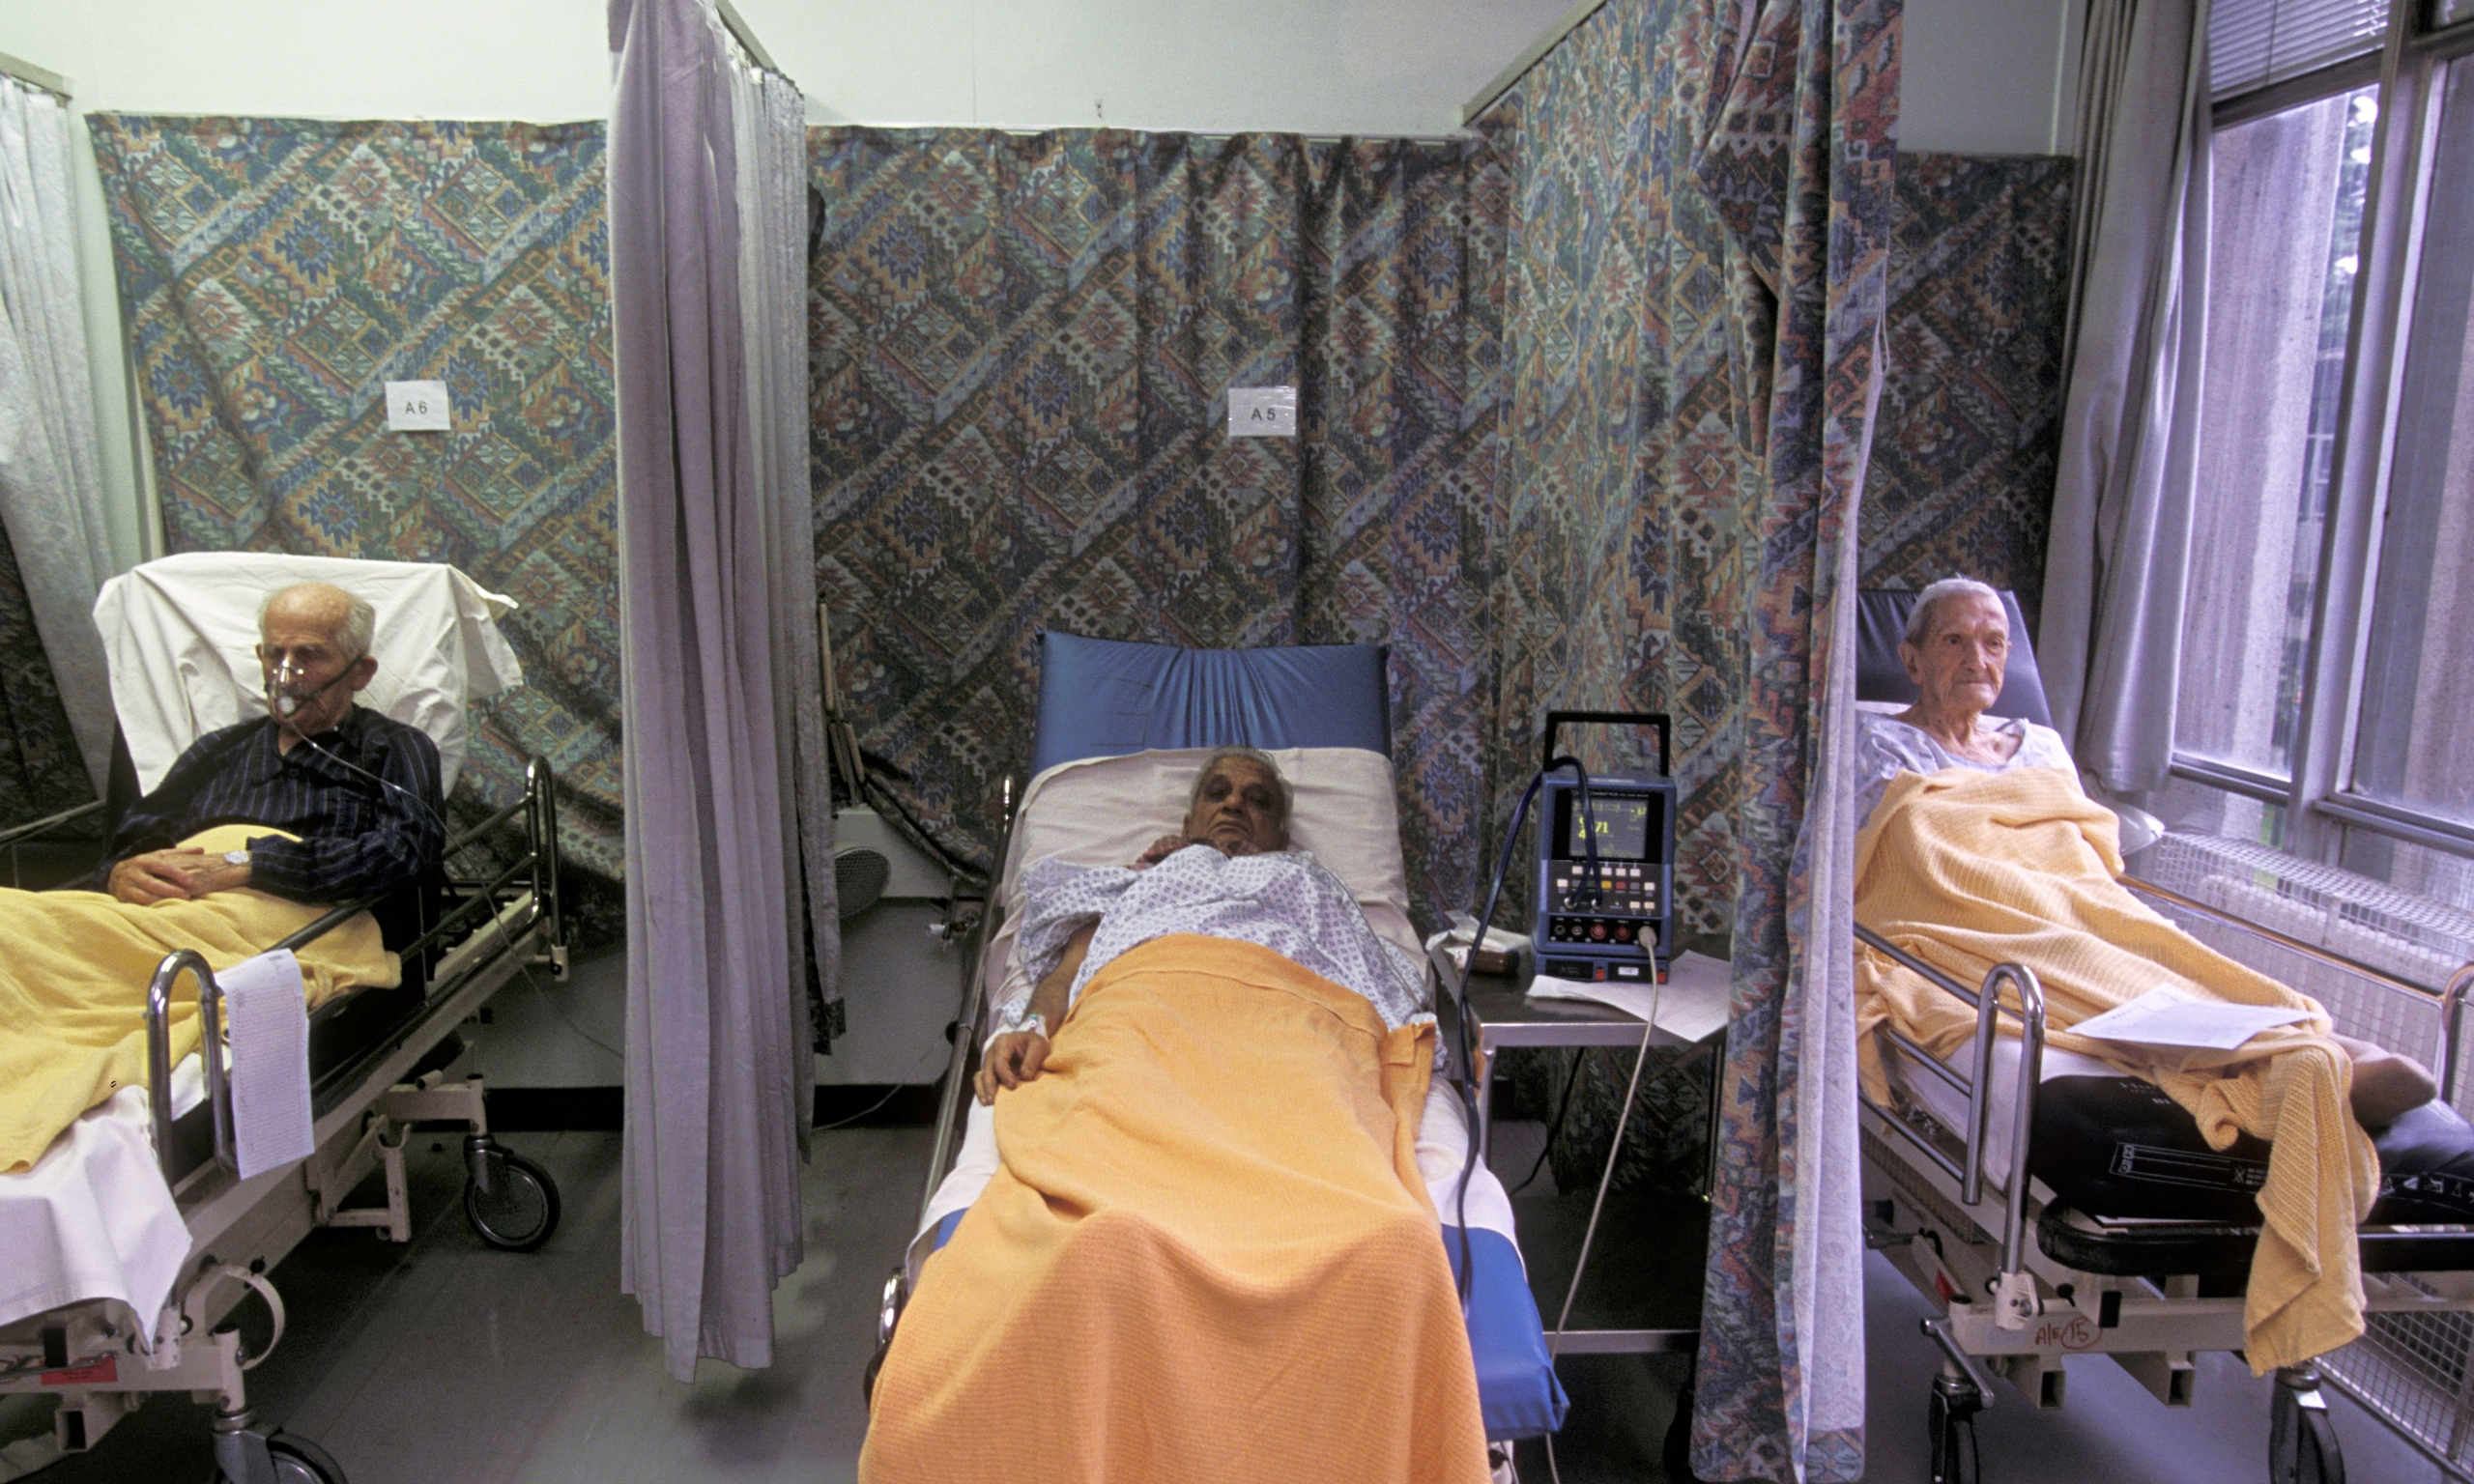 social care problems lead to hospital bed blocking  says